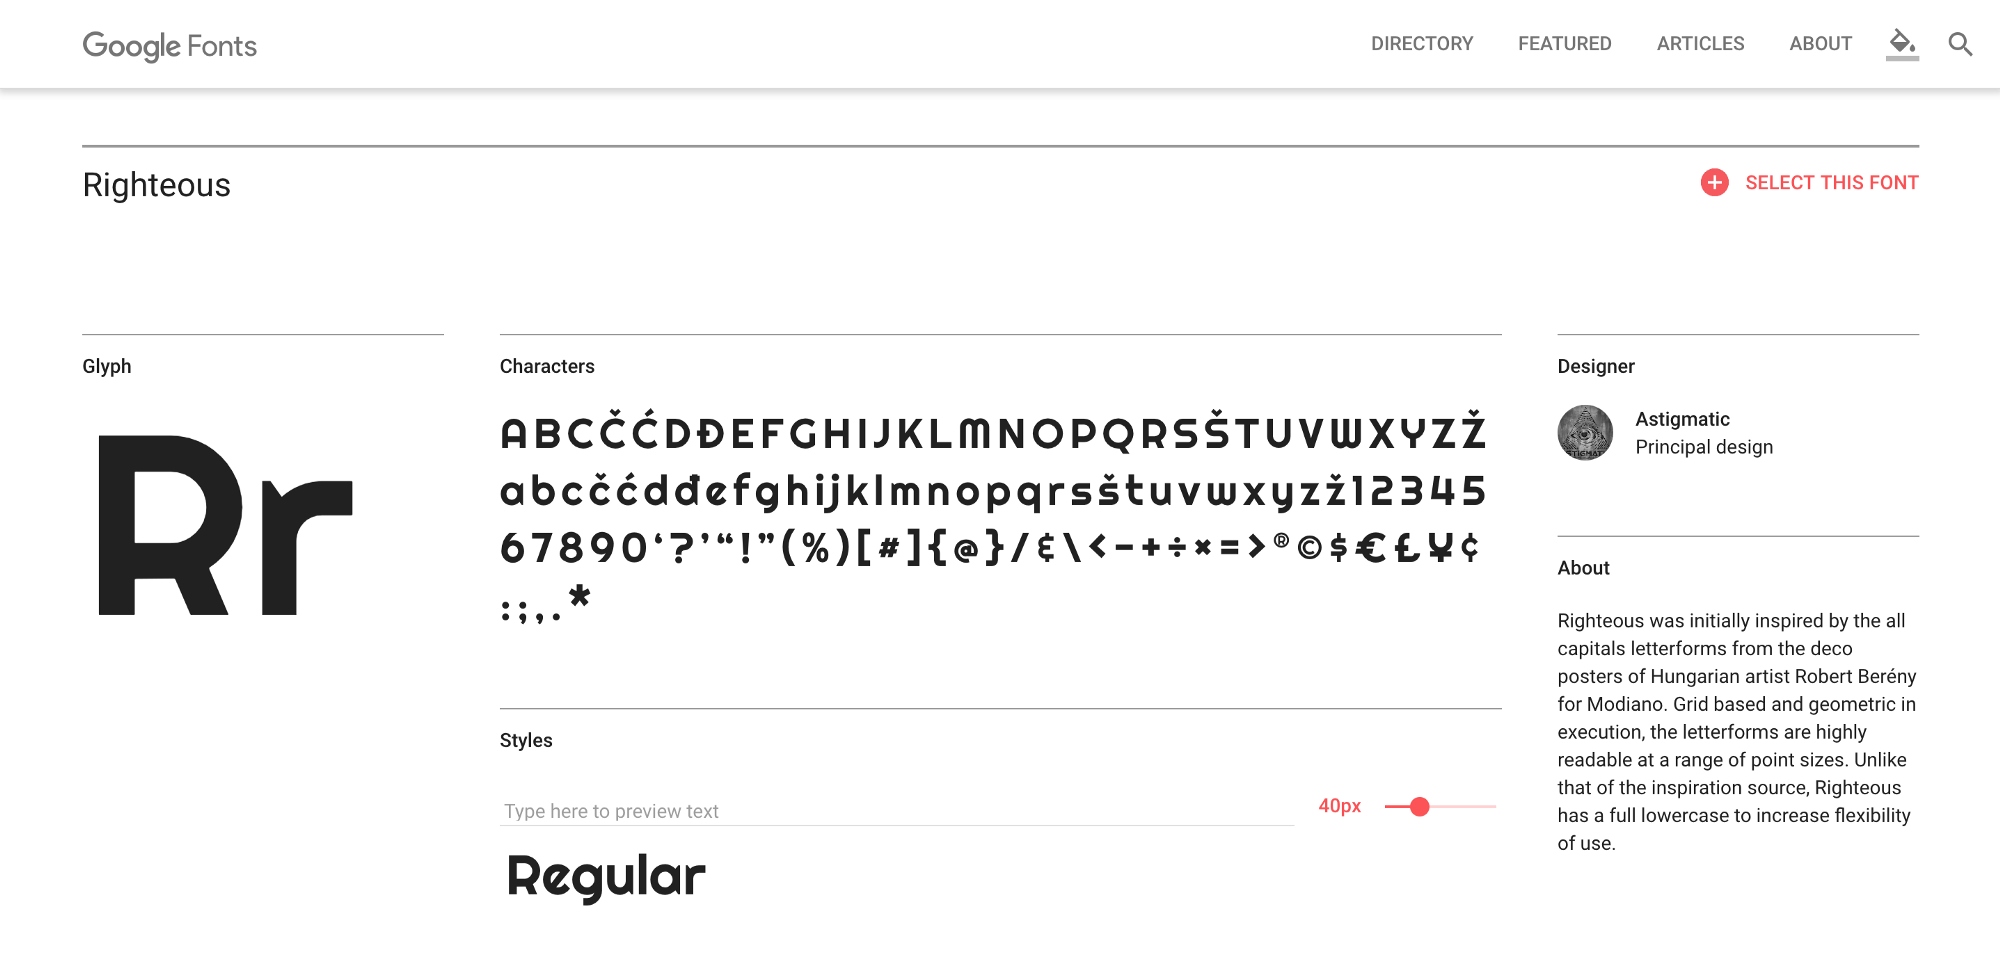 Righteous—Google Fonts